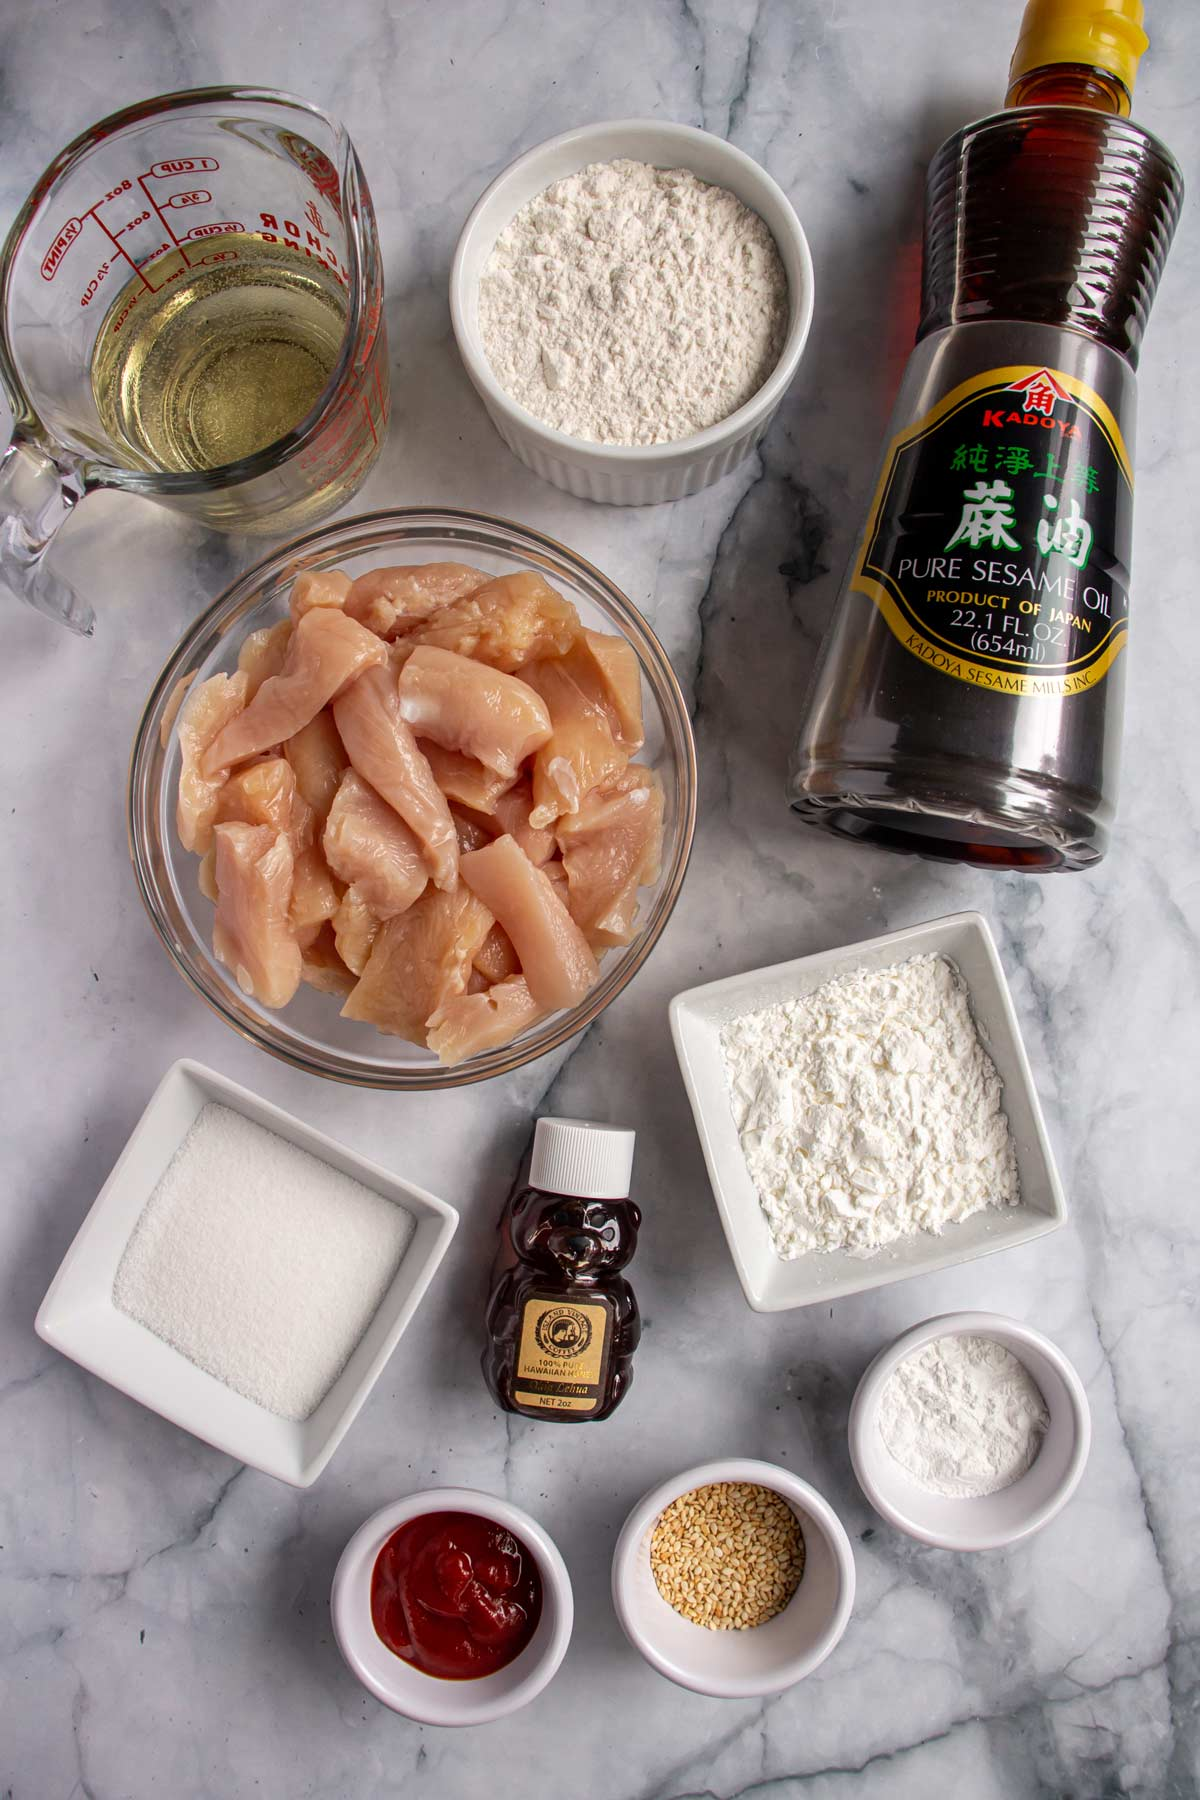 Ingredients for honey sesame chicken on a white marble background.